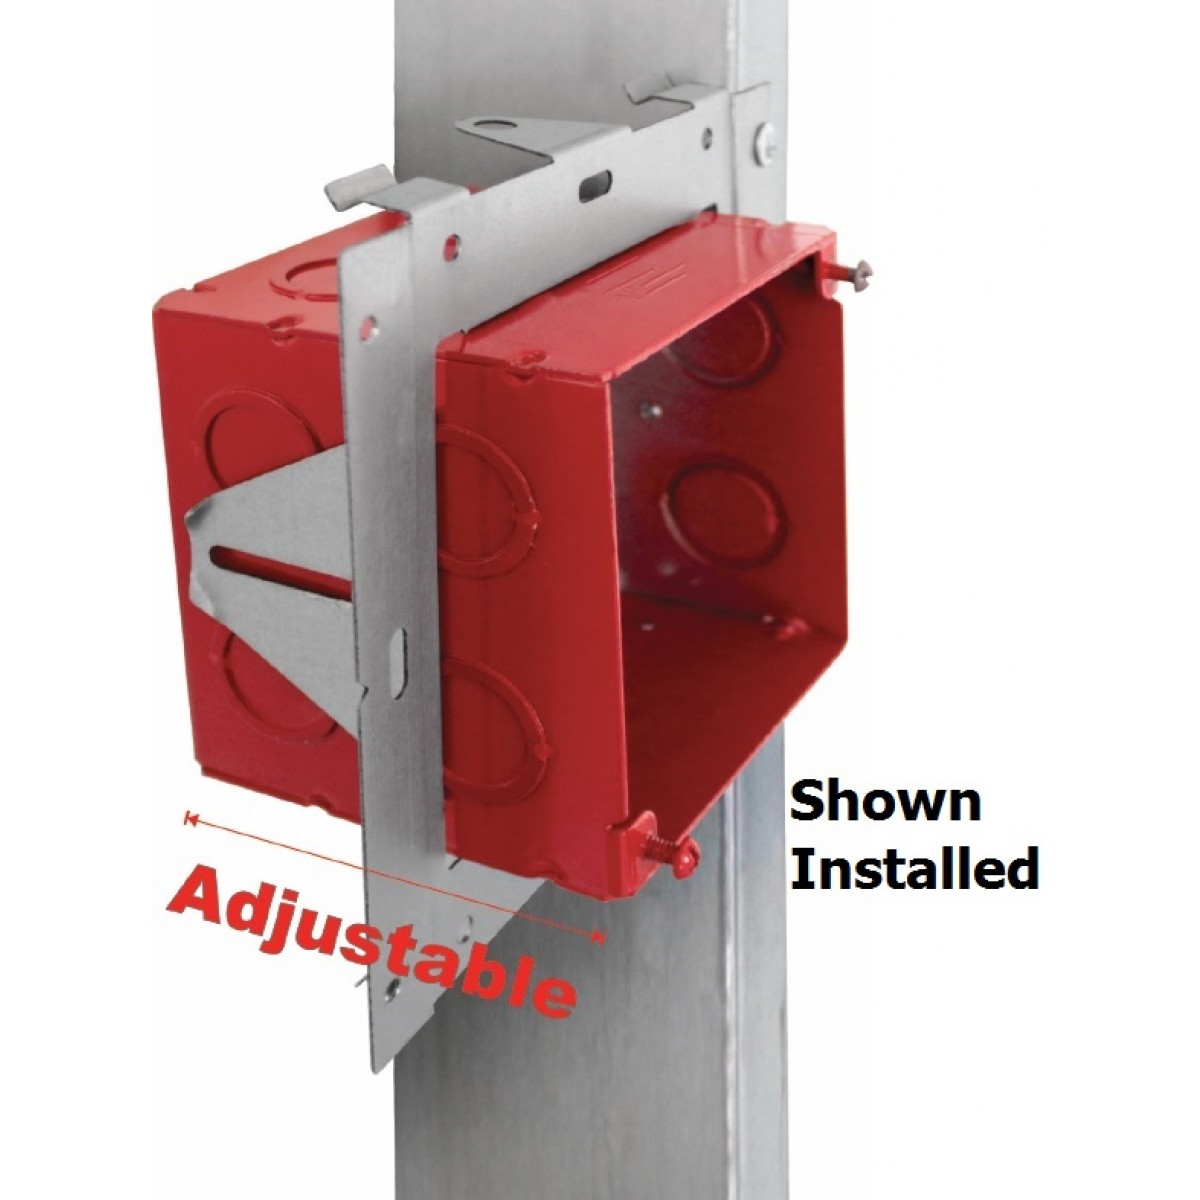 Universal Mounting Adjustable Boxes Box Industrial Plastic Waterproof Electrical Junction Fa Umab Directly On Stud